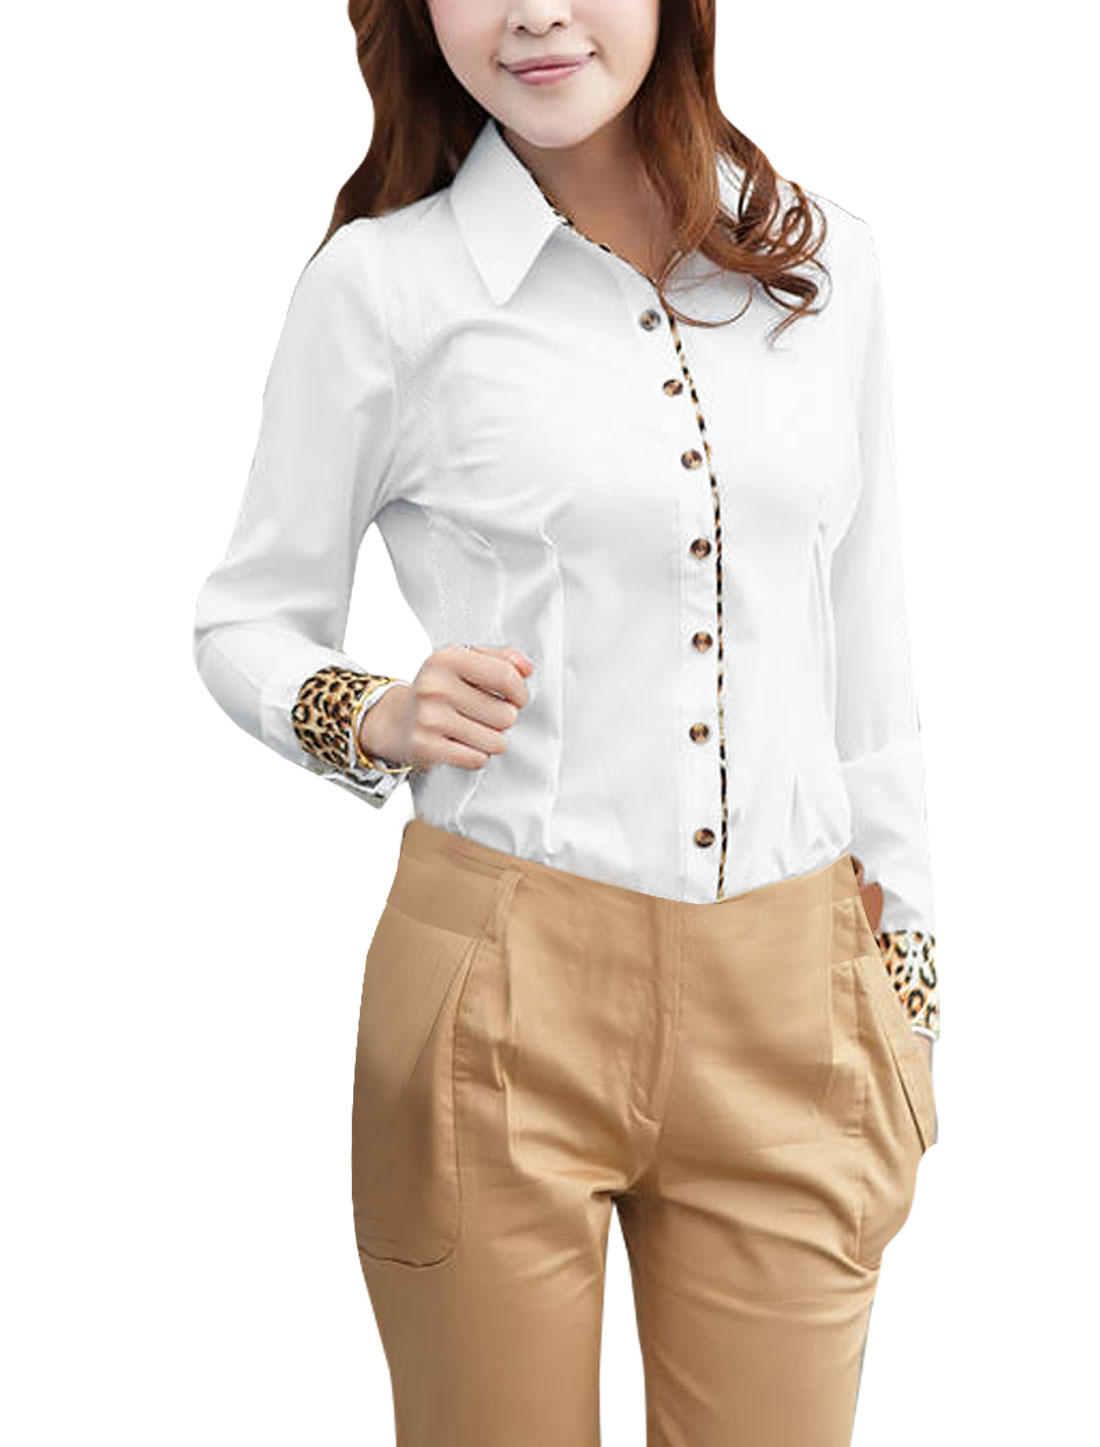 XS Ladies Point Collar Long Sleeve Slim Fit Design Fashion Shirt White